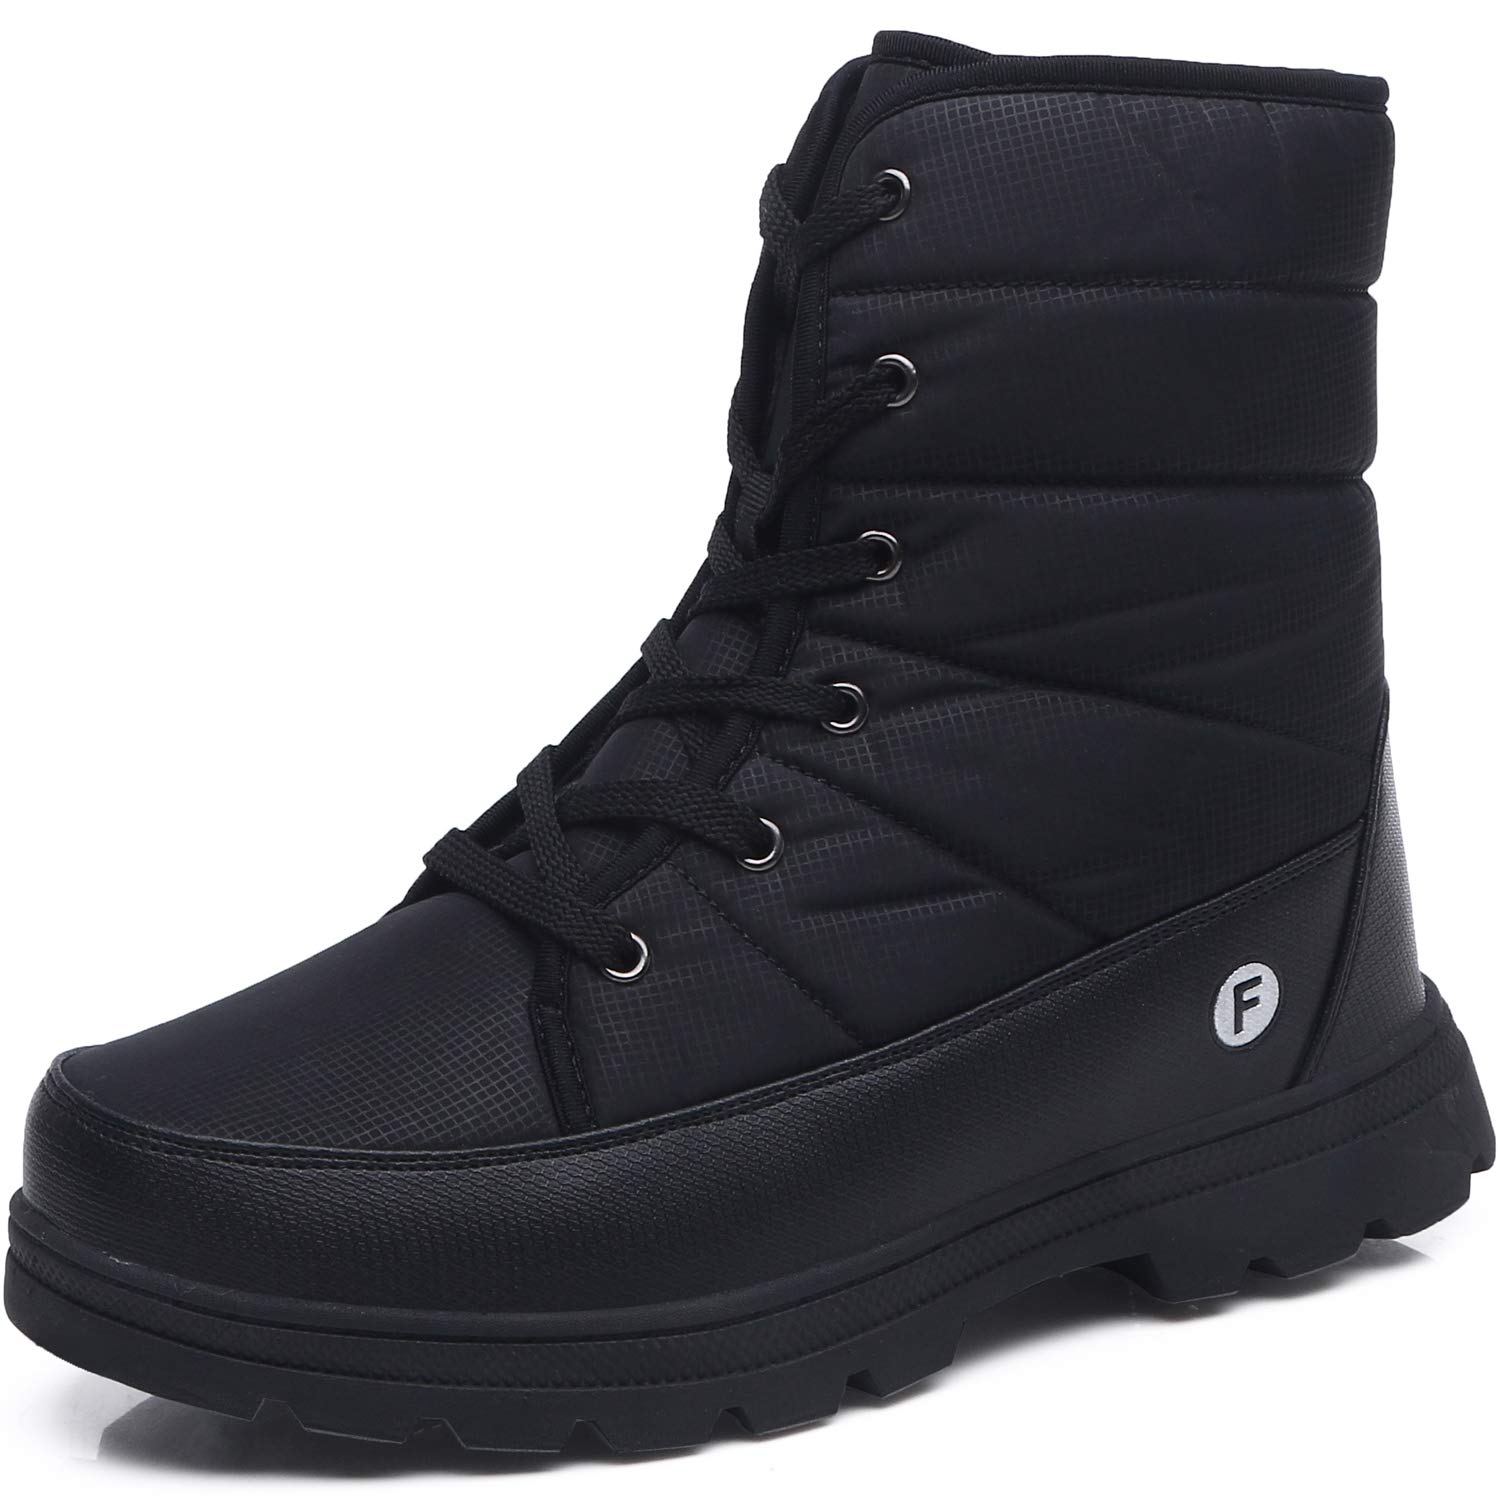 JOINFREE Couples Winter Shoes Snow Boots Warm Fur Waterproof Mid Calf Lightweight Snow Shoes